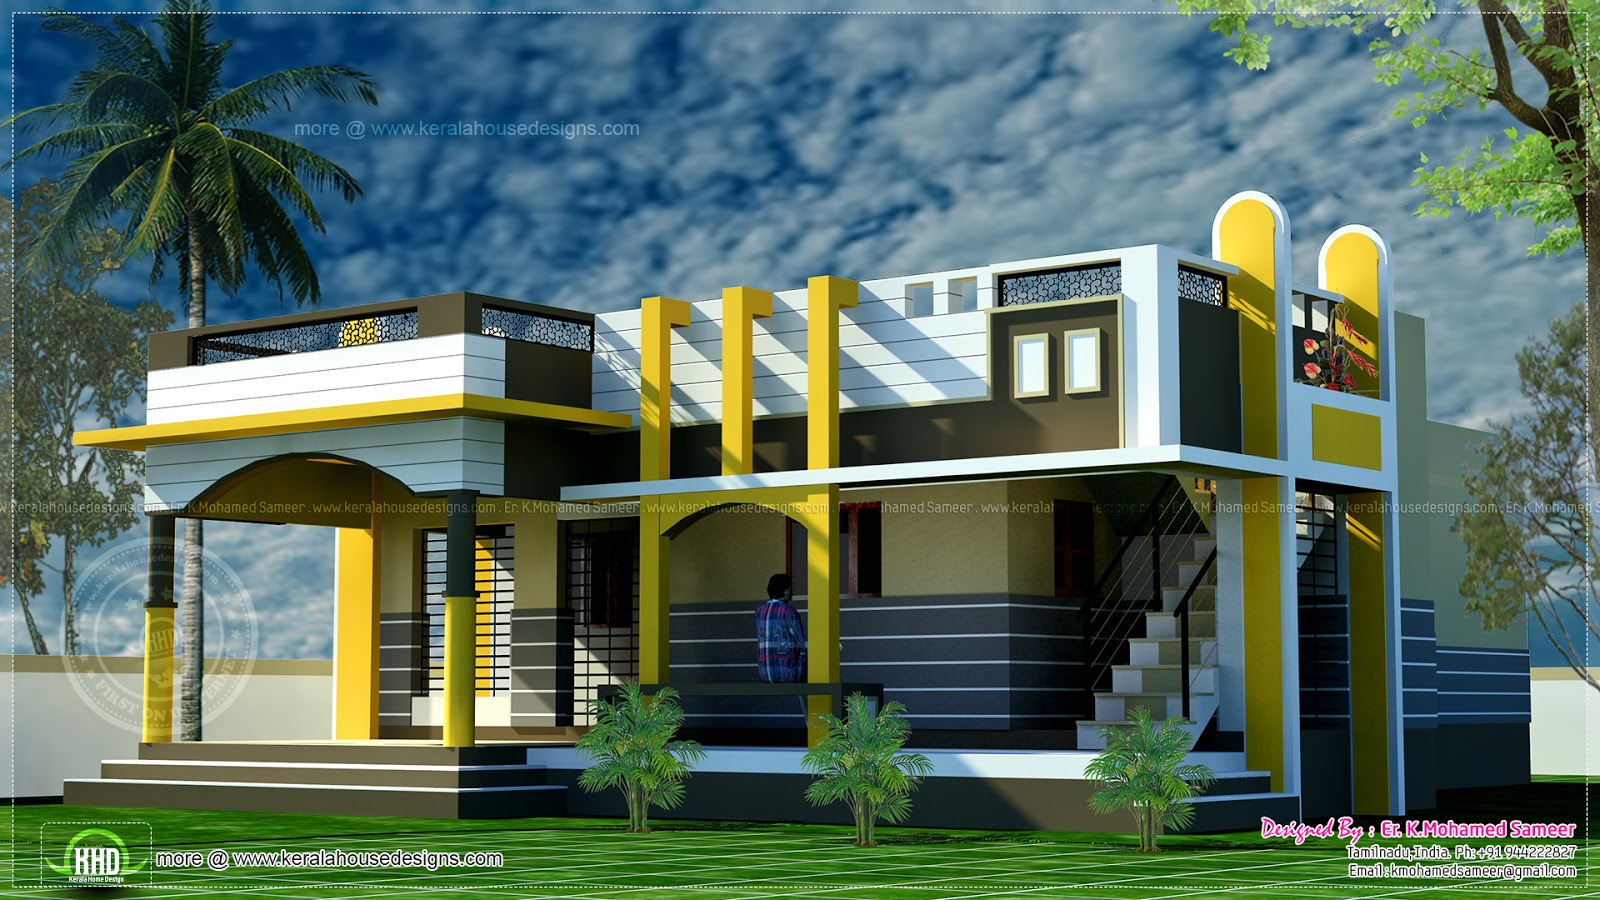 Small house design contemporary style kerala home design Small house pictures and plans